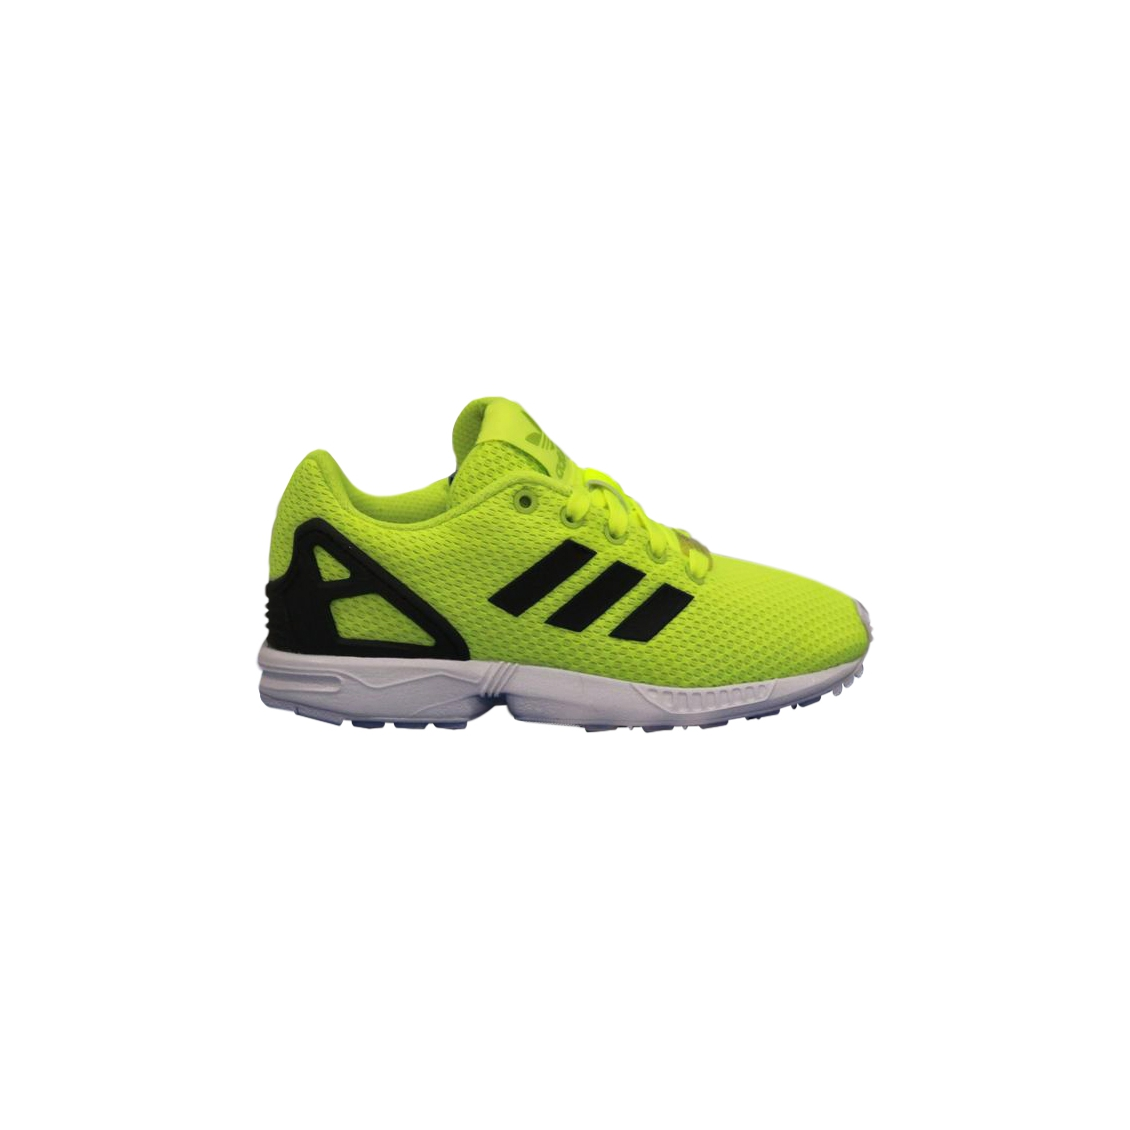 check-out 99500 b0eed Adidas Zx Flux Jaune Fluo Bebe arrivee-d-air-sims.fr